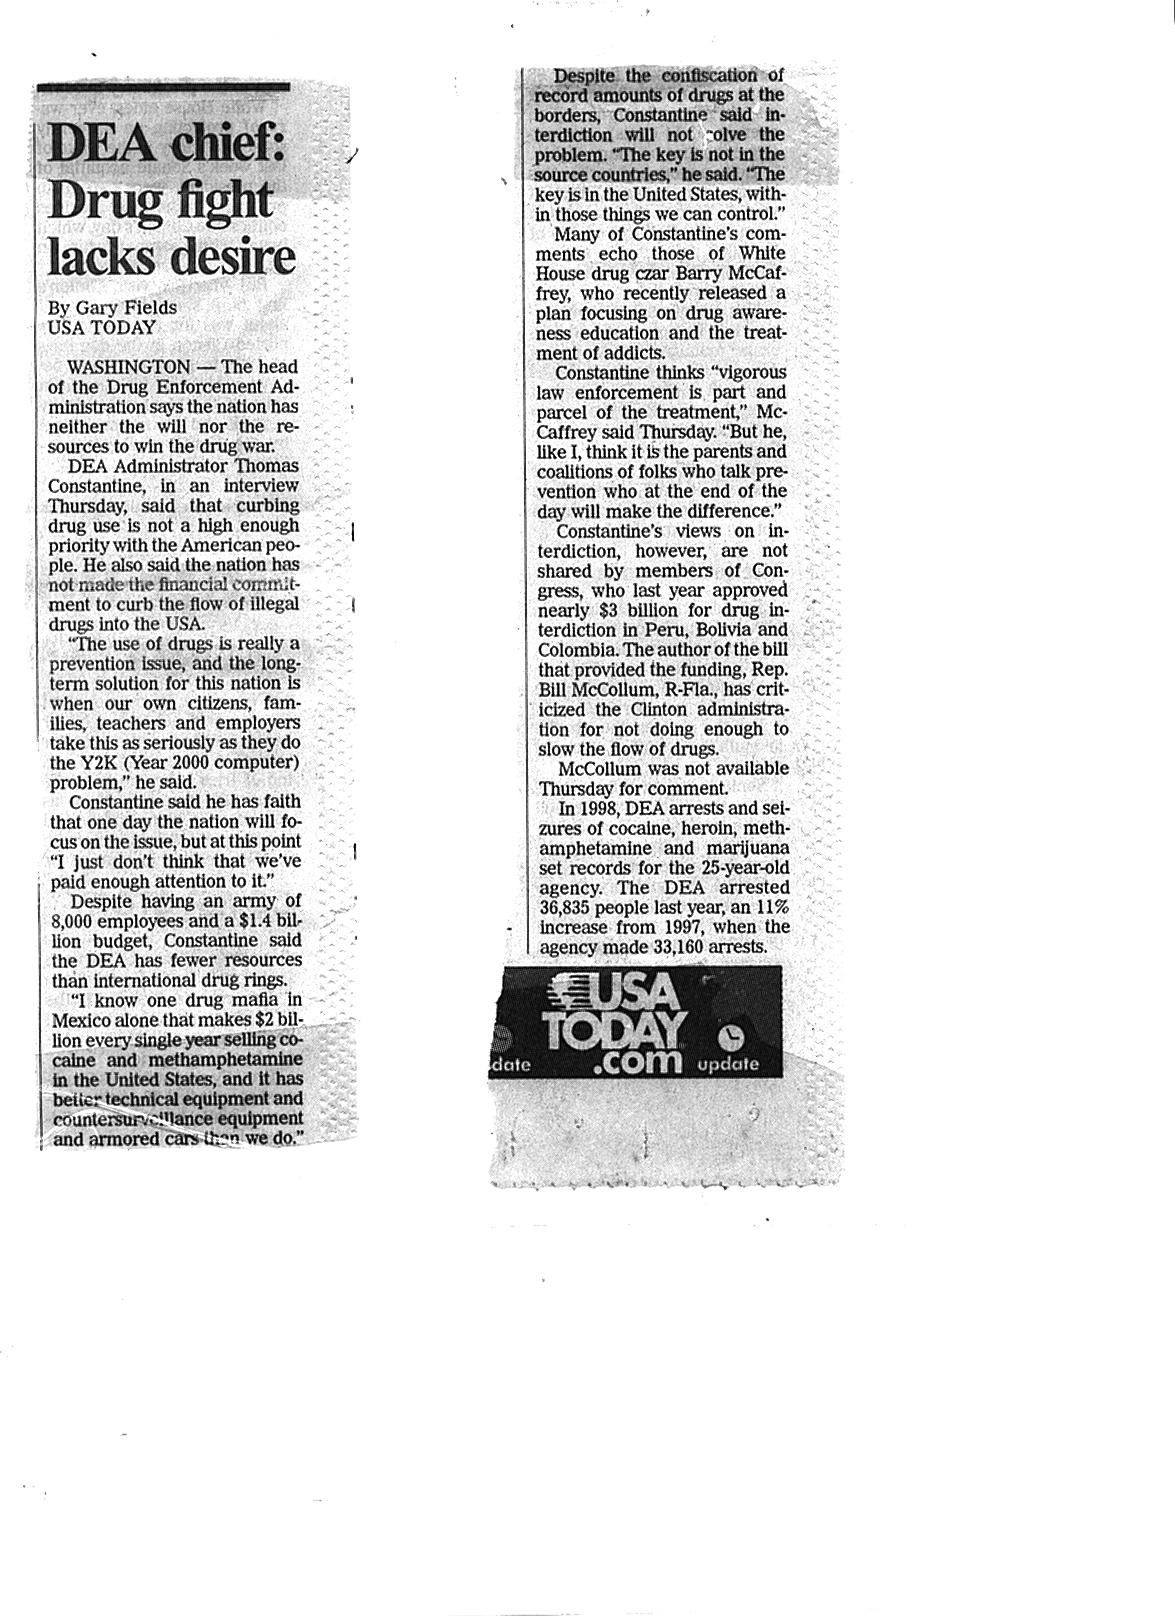 USA Today clipping 2/19/1999 DEA says